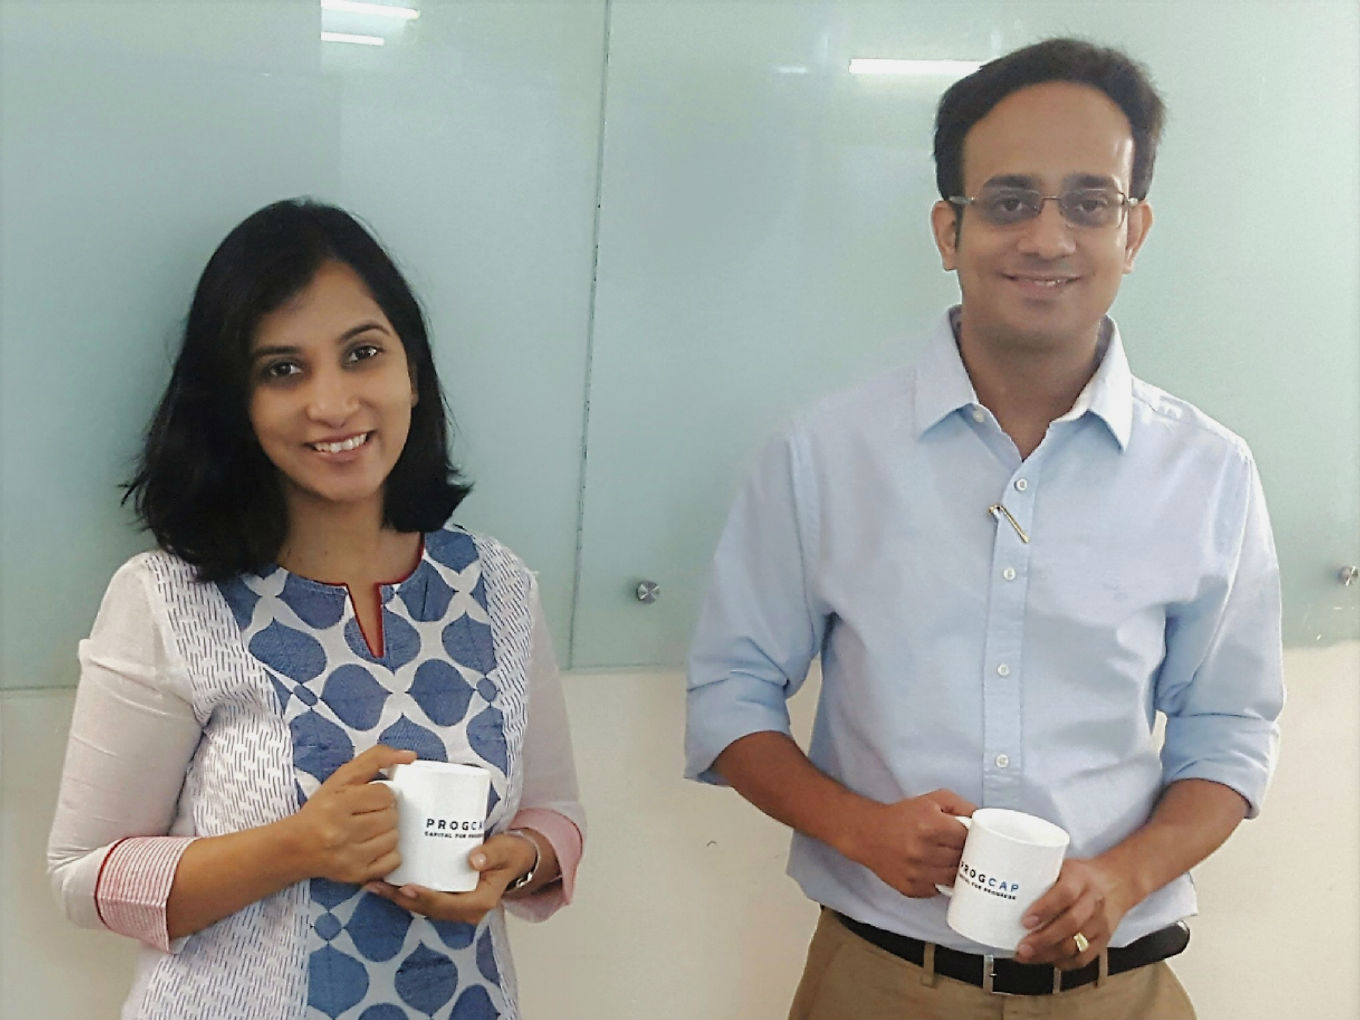 Progcap Raises $5 Mn In Series A Funding Round Led By Sequoia